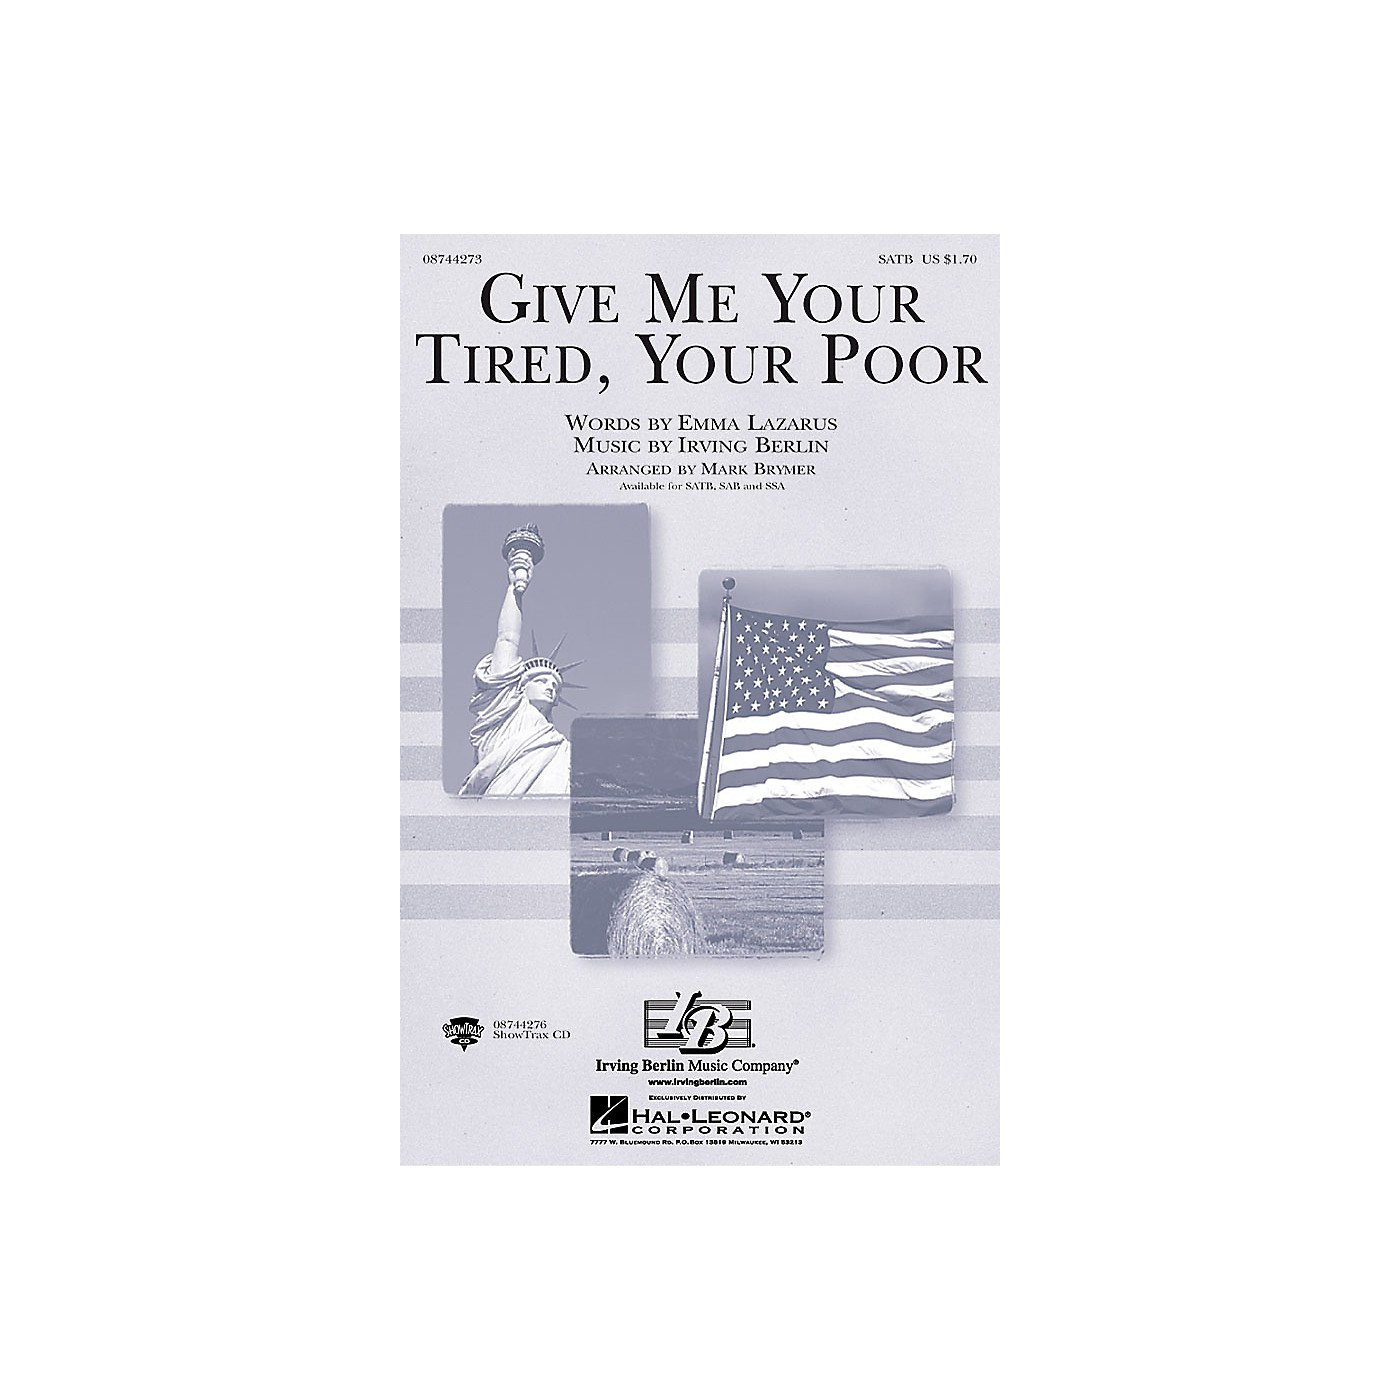 Hal Leonard Give Me Your Tired, Your Poor SATB arranged by Mark Brymer thumbnail